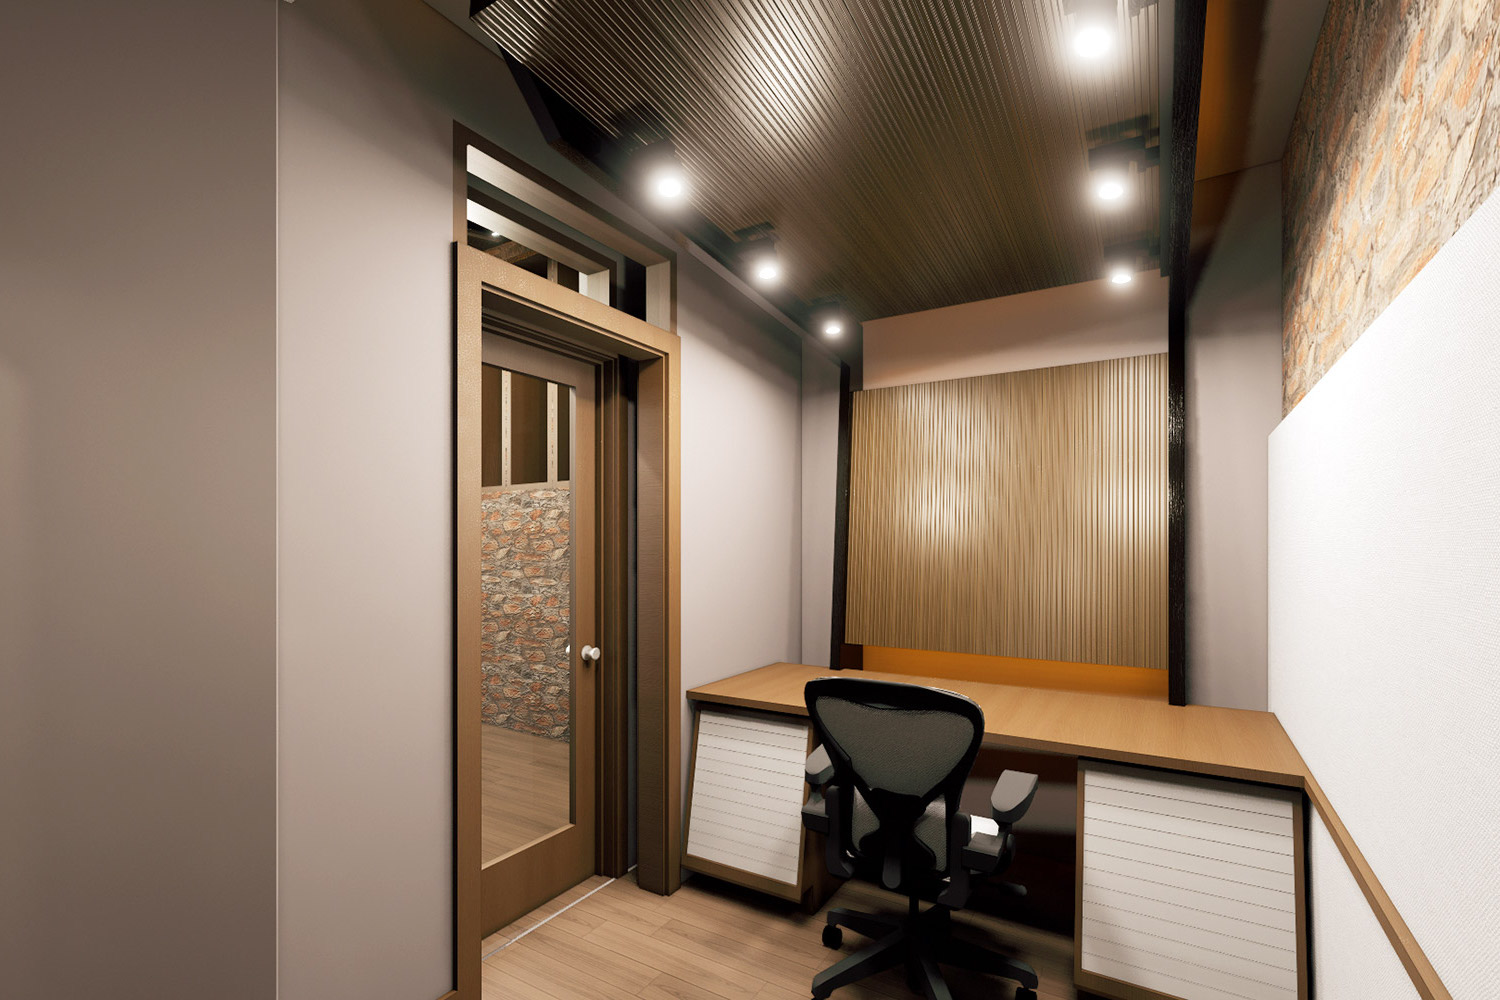 Mix with the Masters hired WSDG for the acoustic design and systems integration of their new recording studio complex in Paris, France. Suite A.